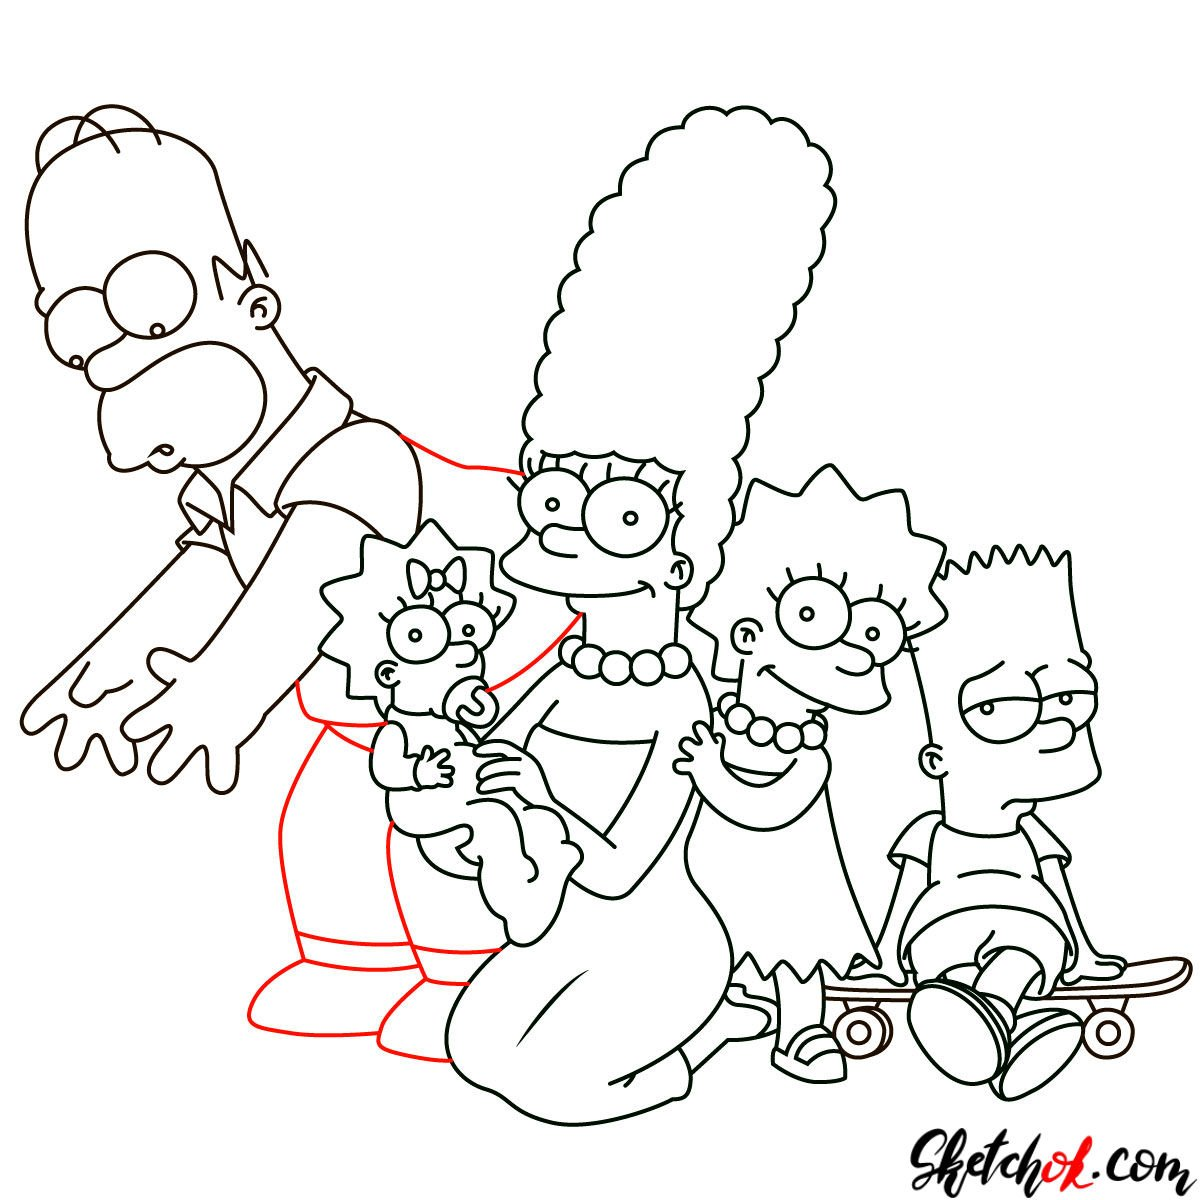 How to draw the Simpsons Family - step 28